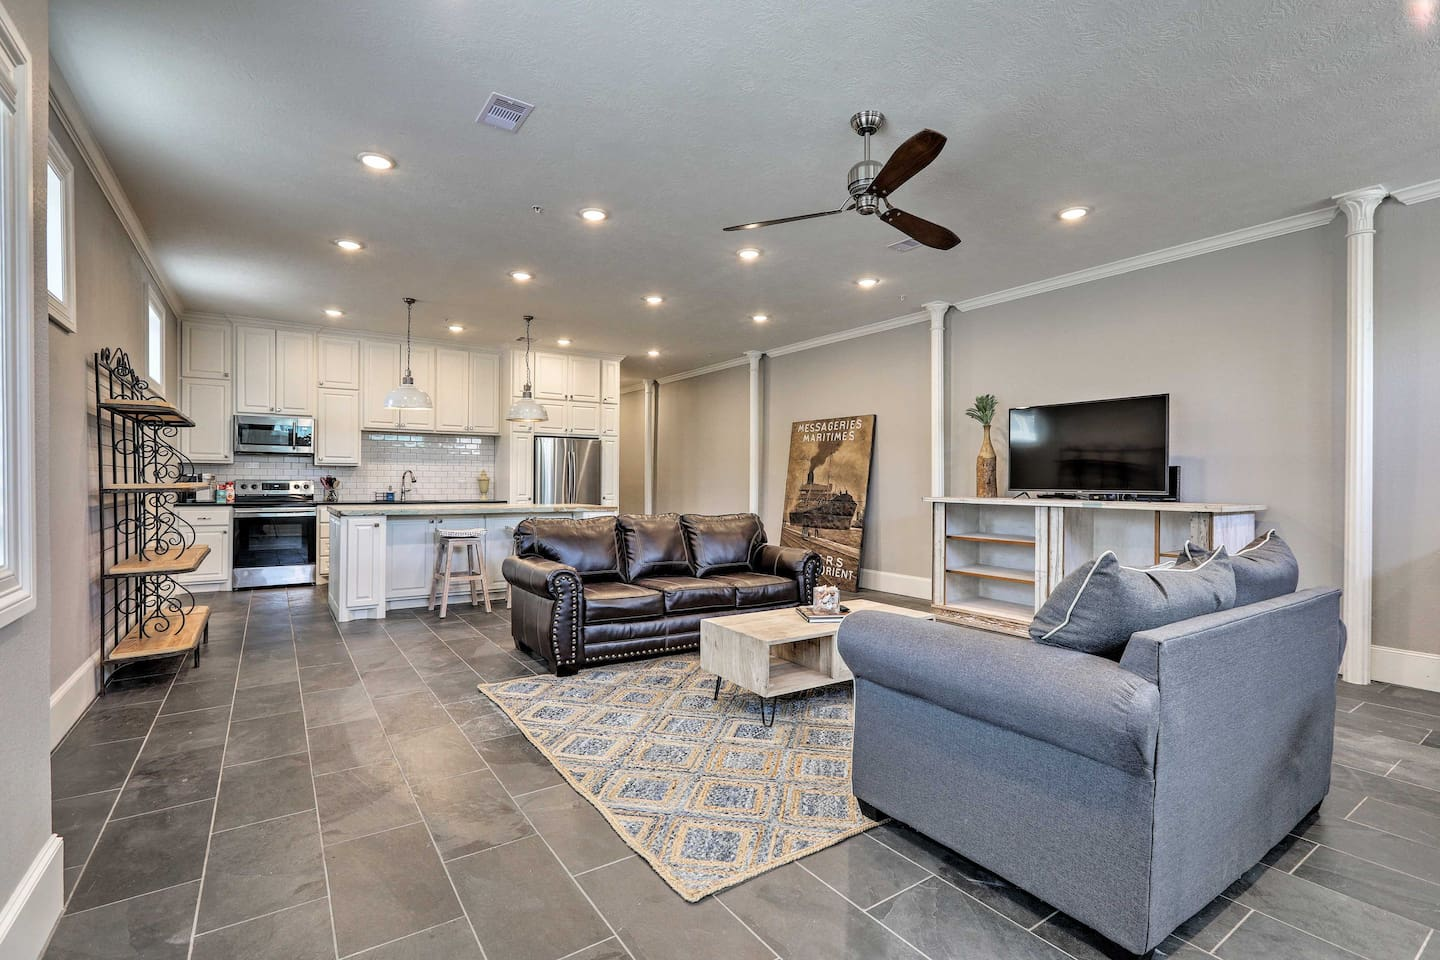 Treat yourself to an upscale stay at this Galveston vacation rental.